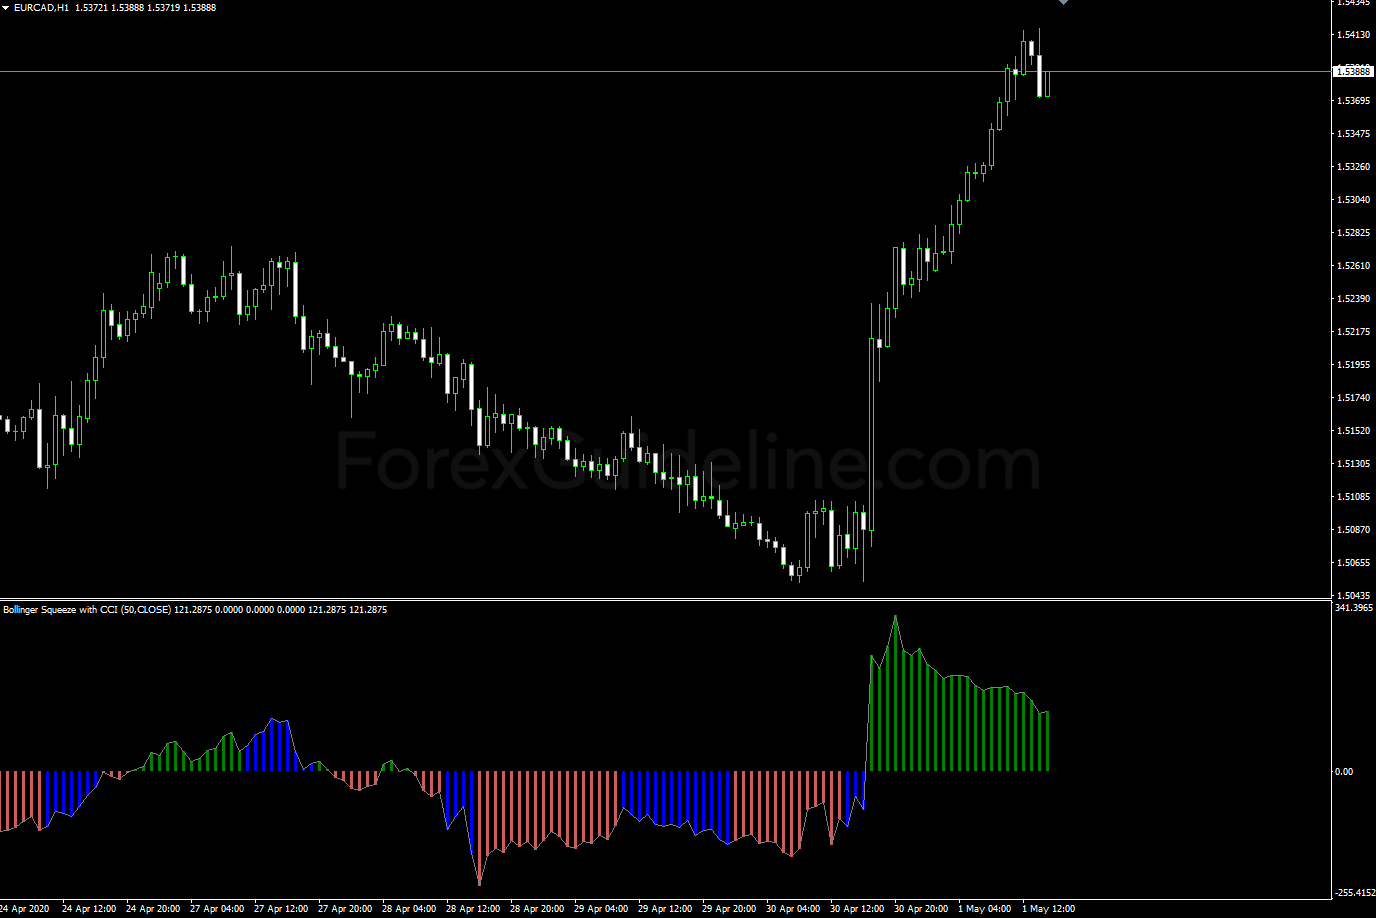 bollinger squeeze with cci